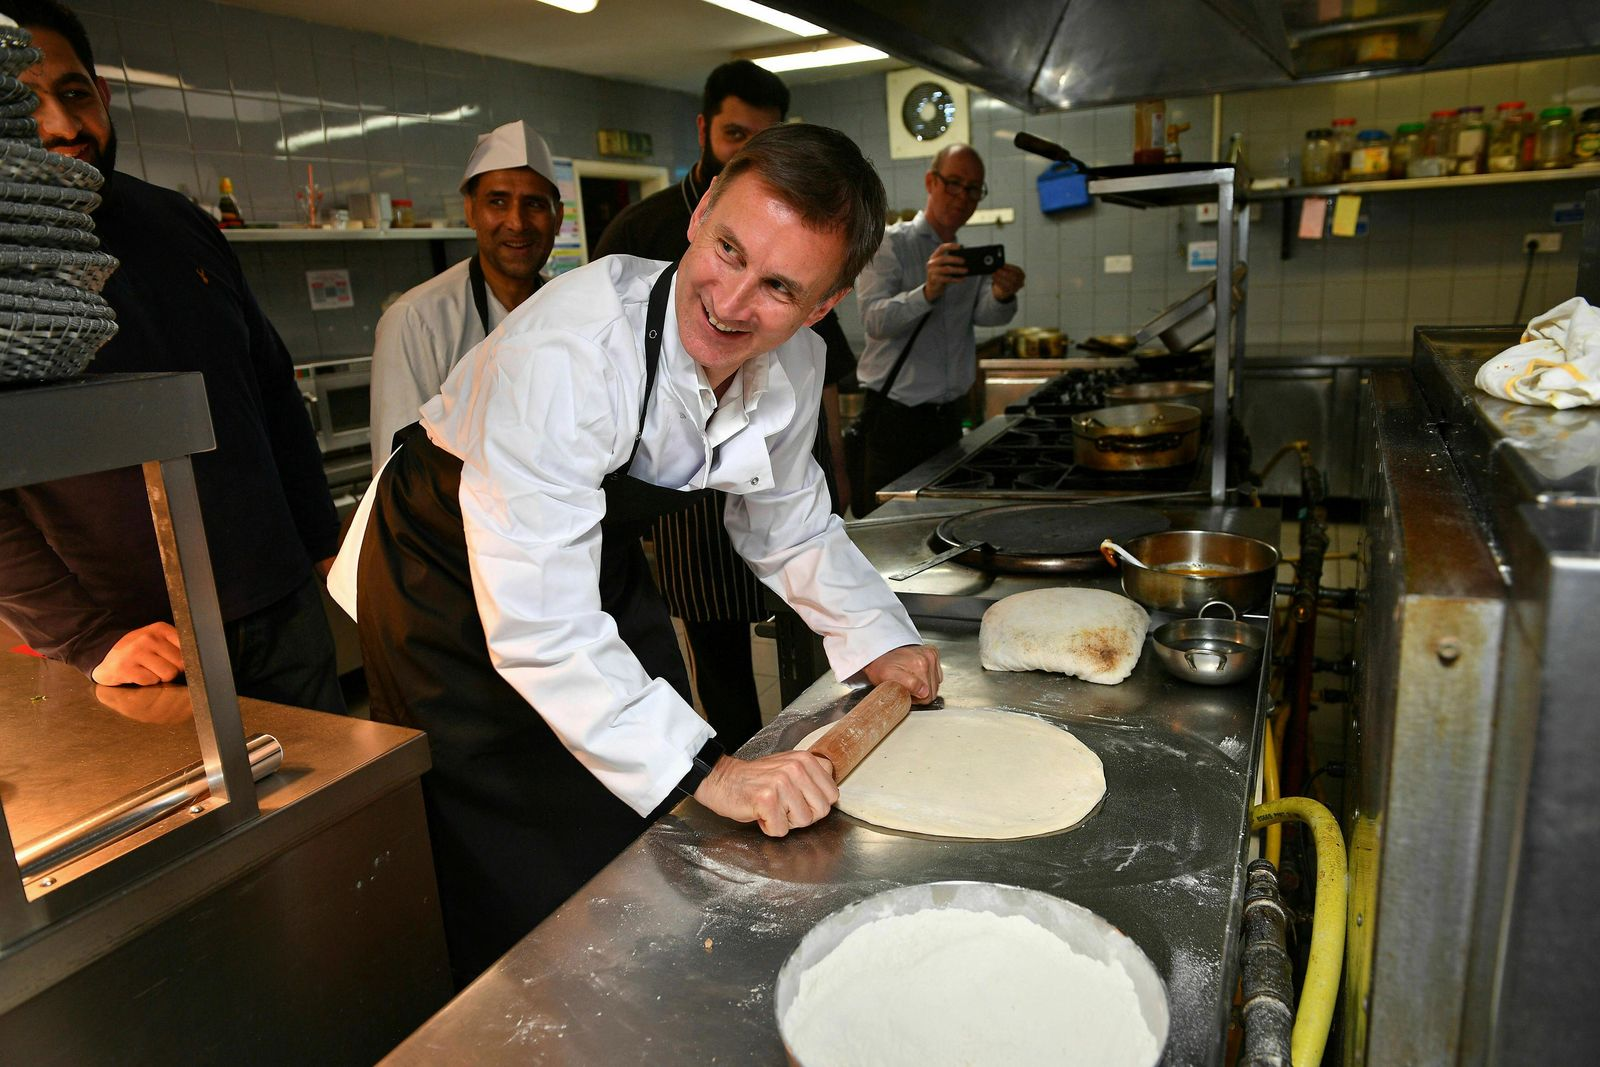 Conservative Party leadership candidate Jeremy Hunt rolls a naan bread as he visits Imran's Balti Restaurant ahead of the first Tory party hustings, in Birmingham, England, Saturday June 22, 2019. (Ben Birchall/PA via AP)